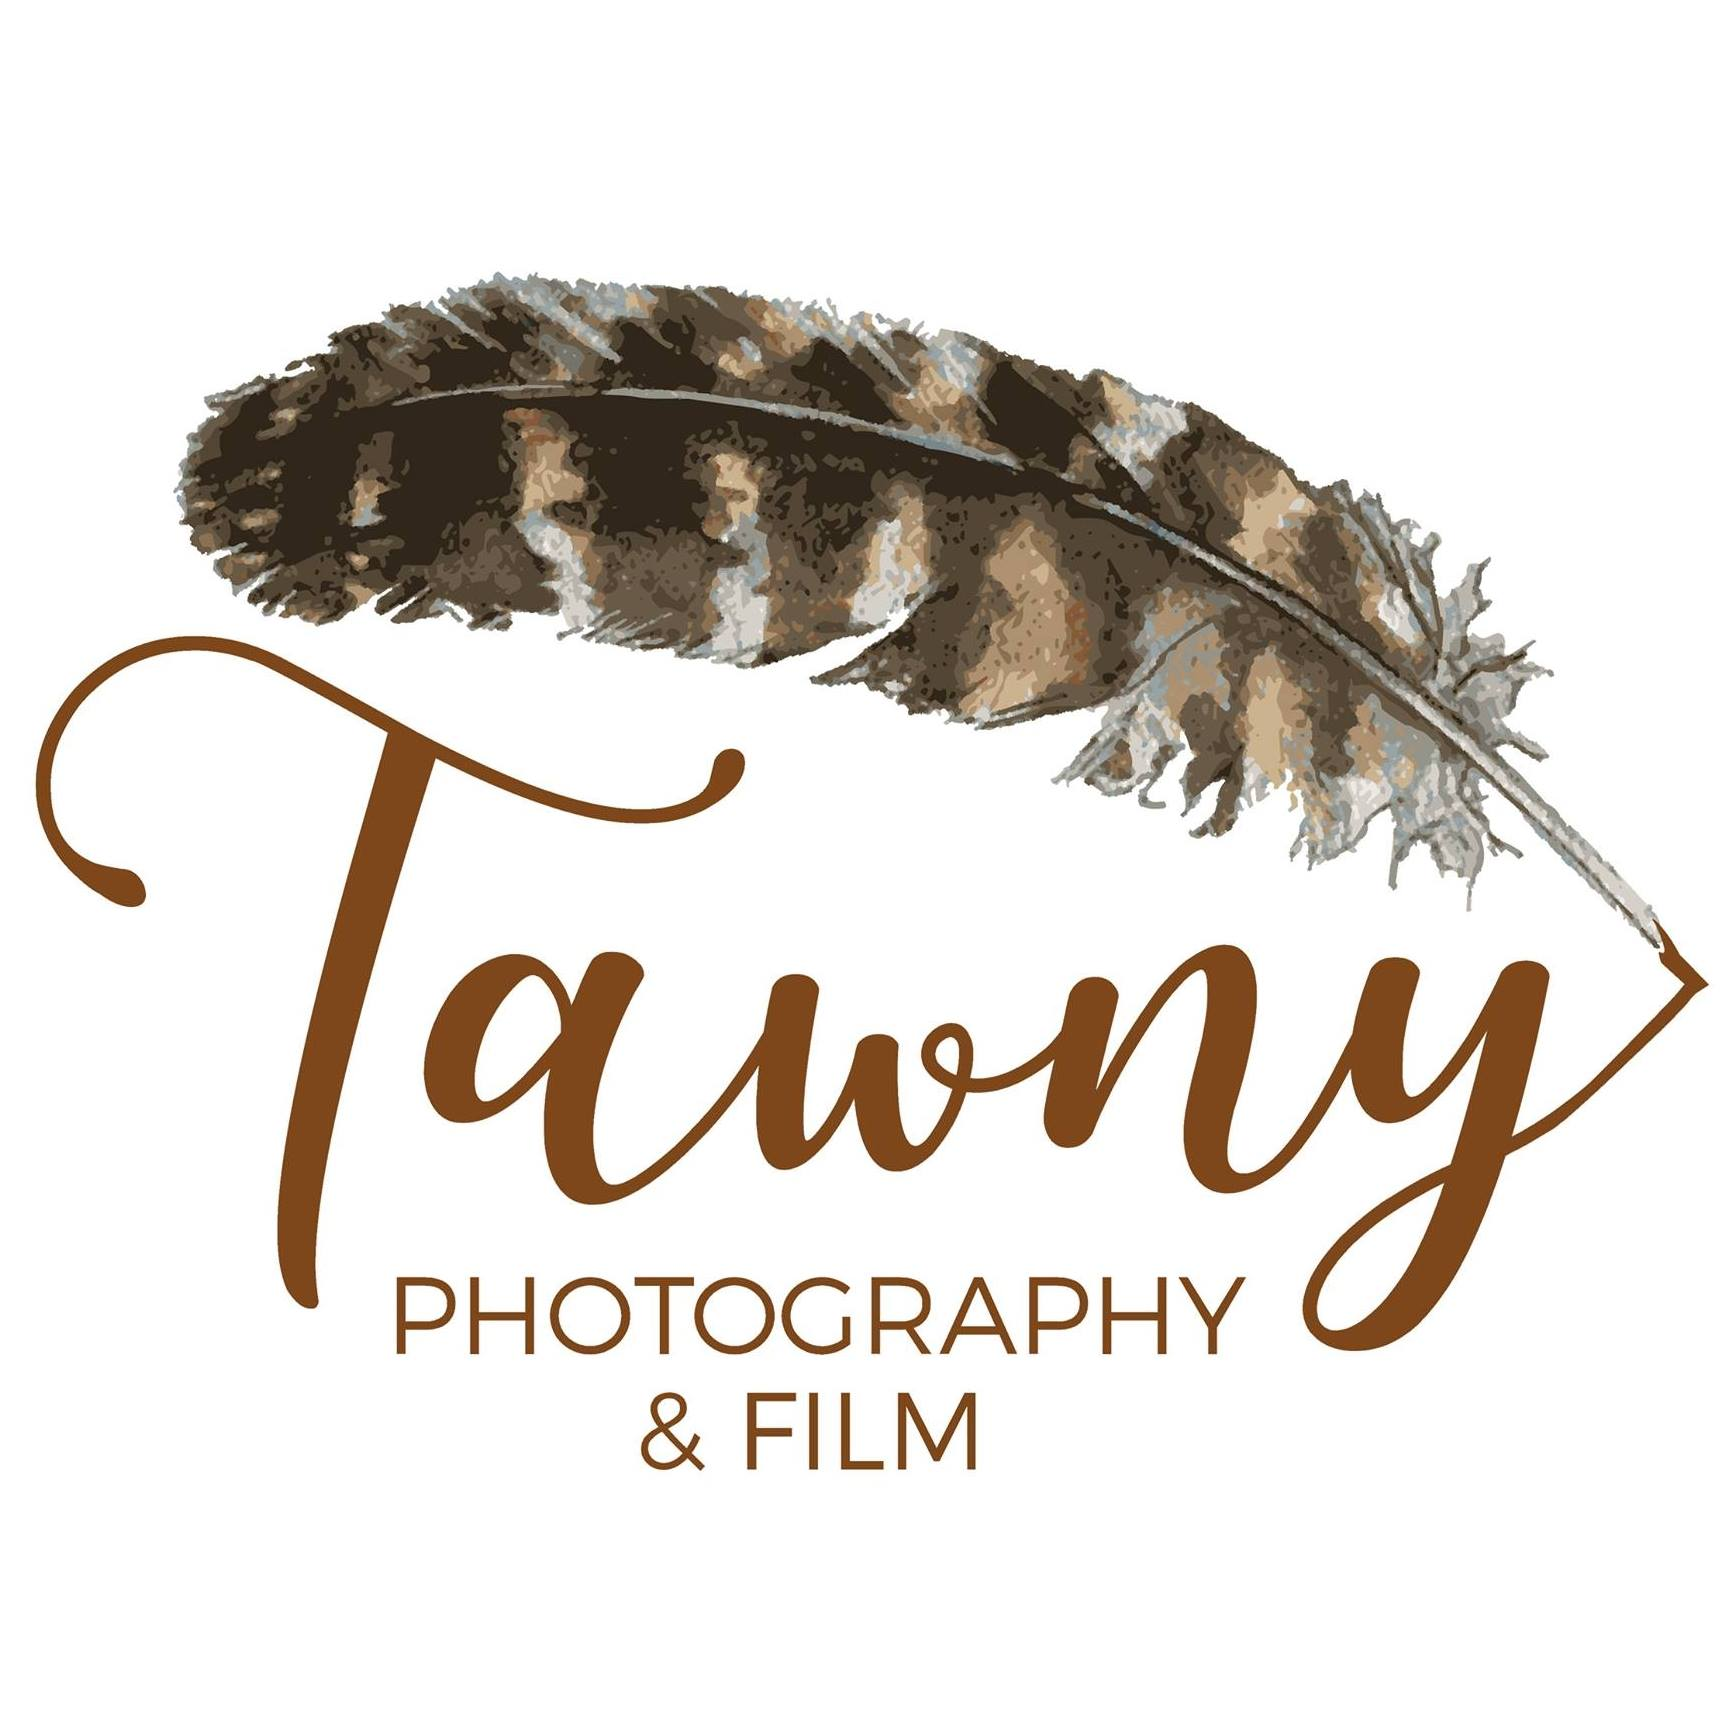 Tawny Photography and Film